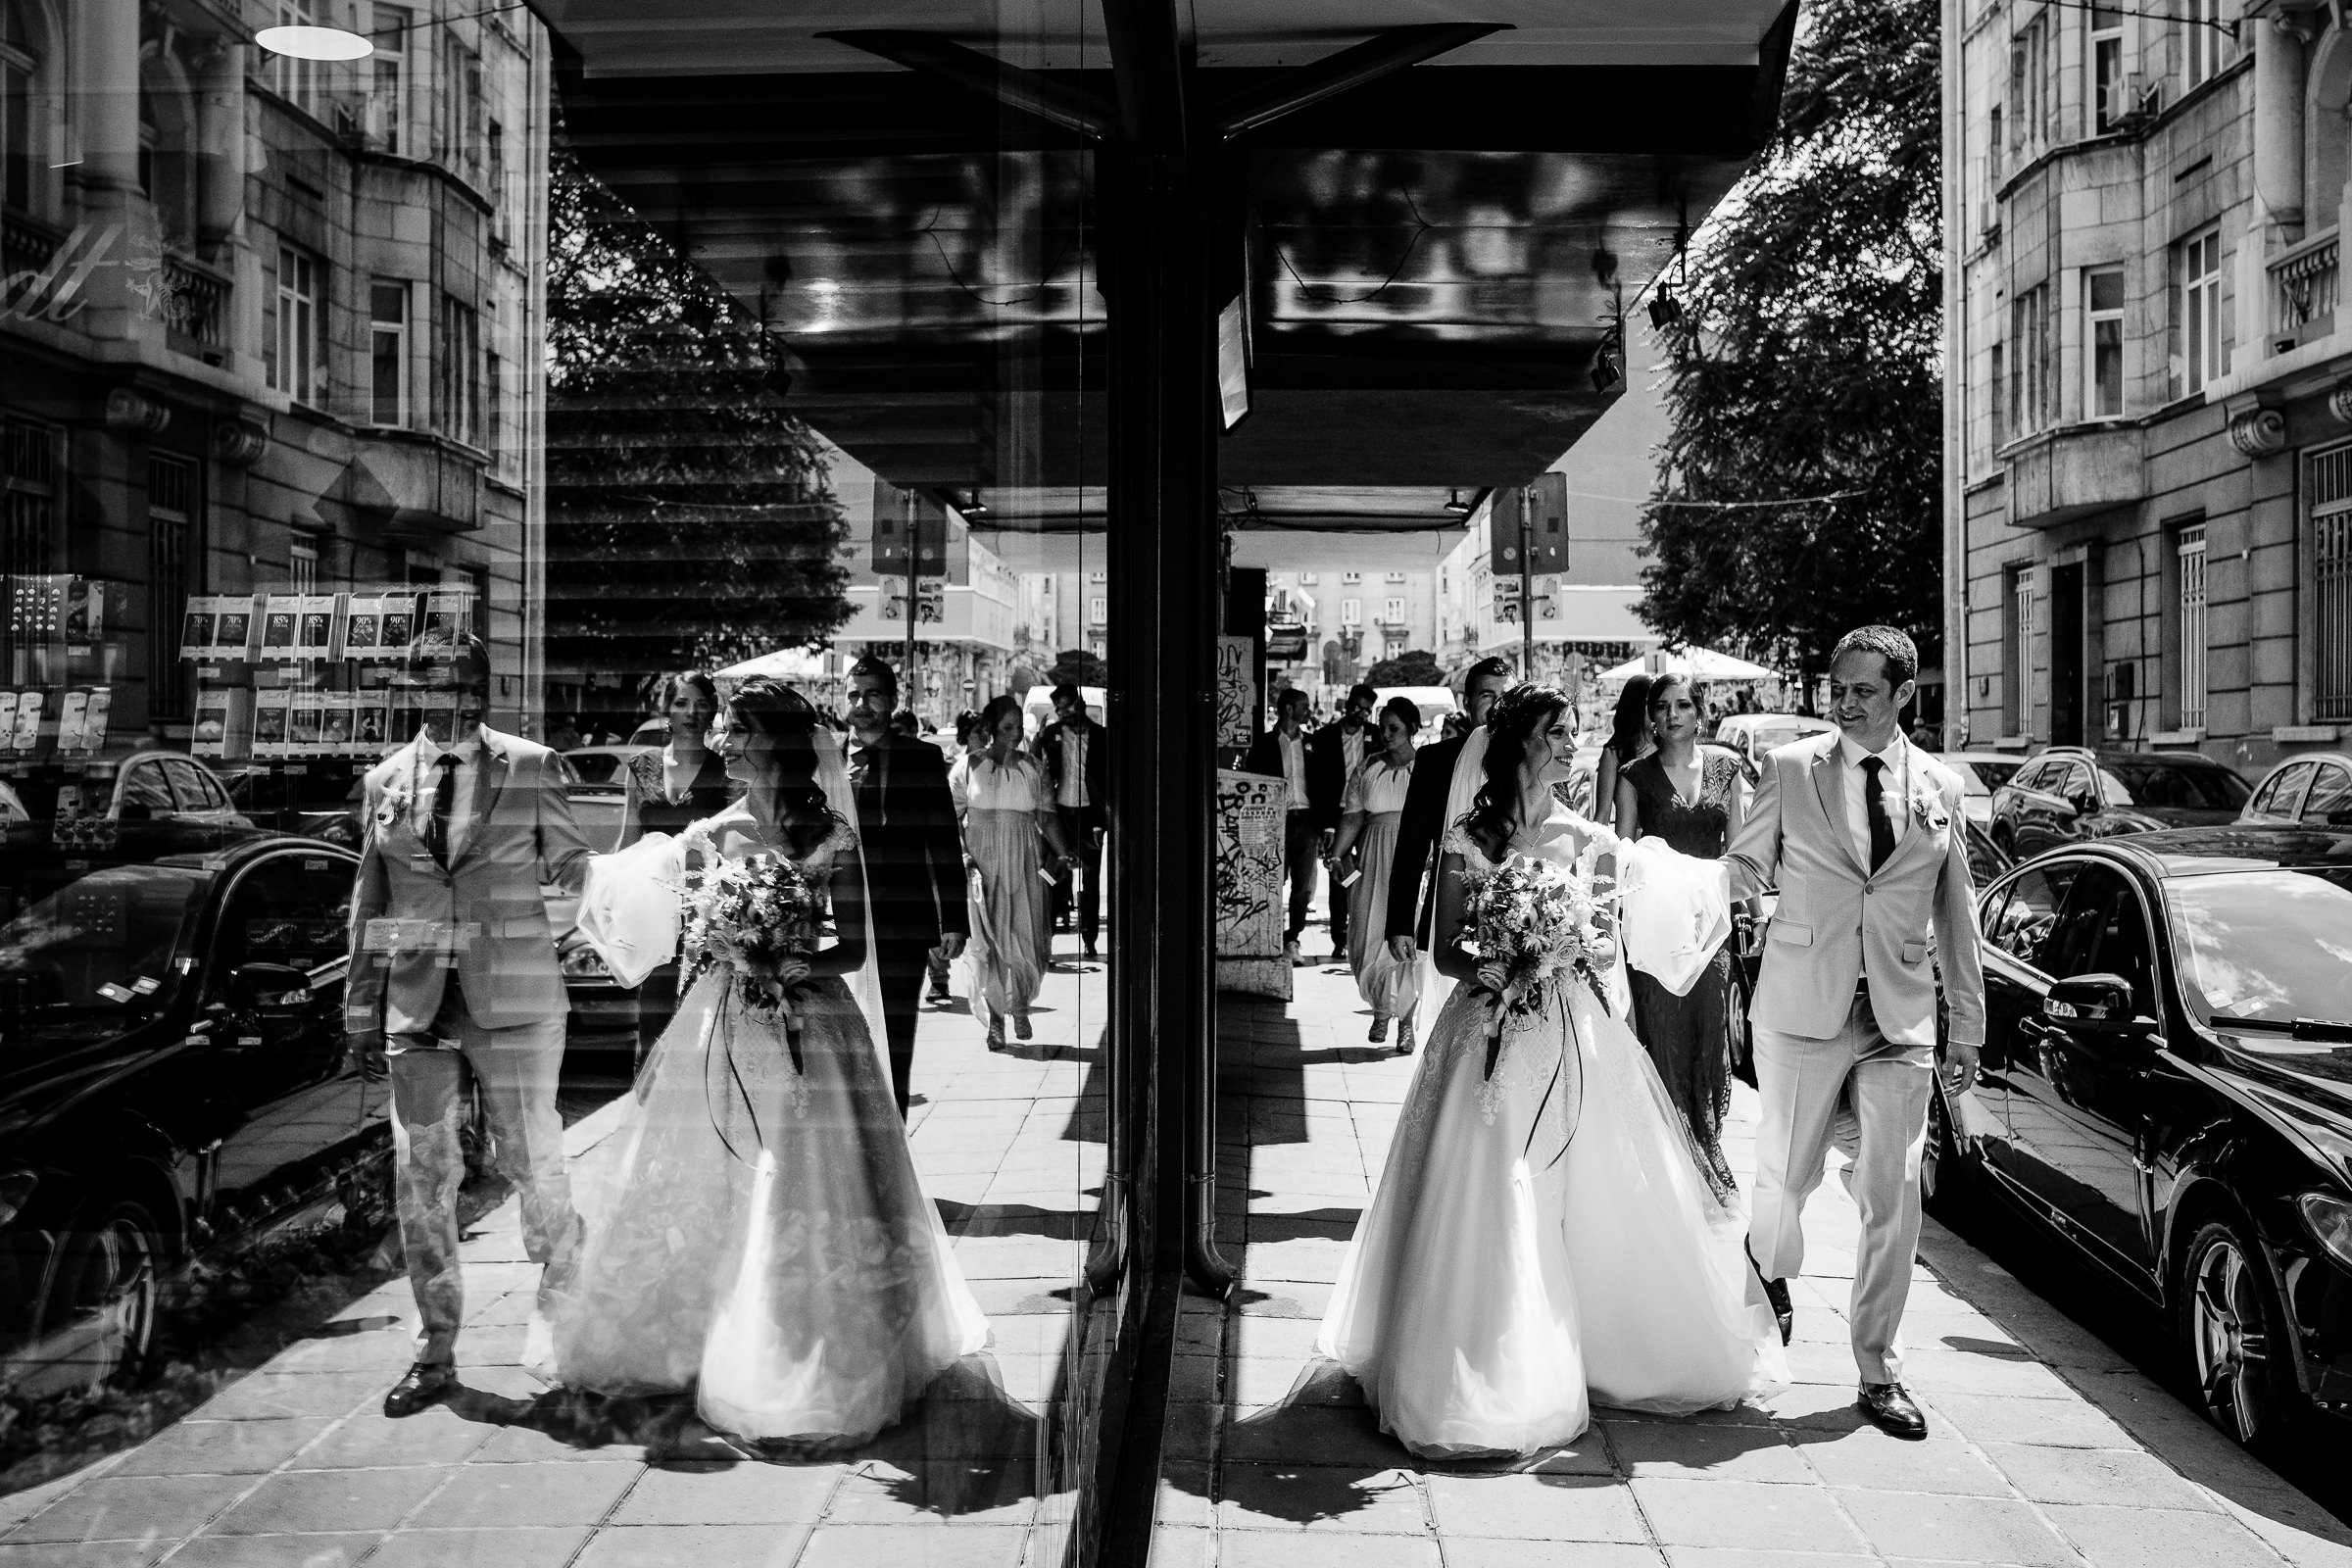 Reflected couple and guests in street scene - photo by Deliysky Studio